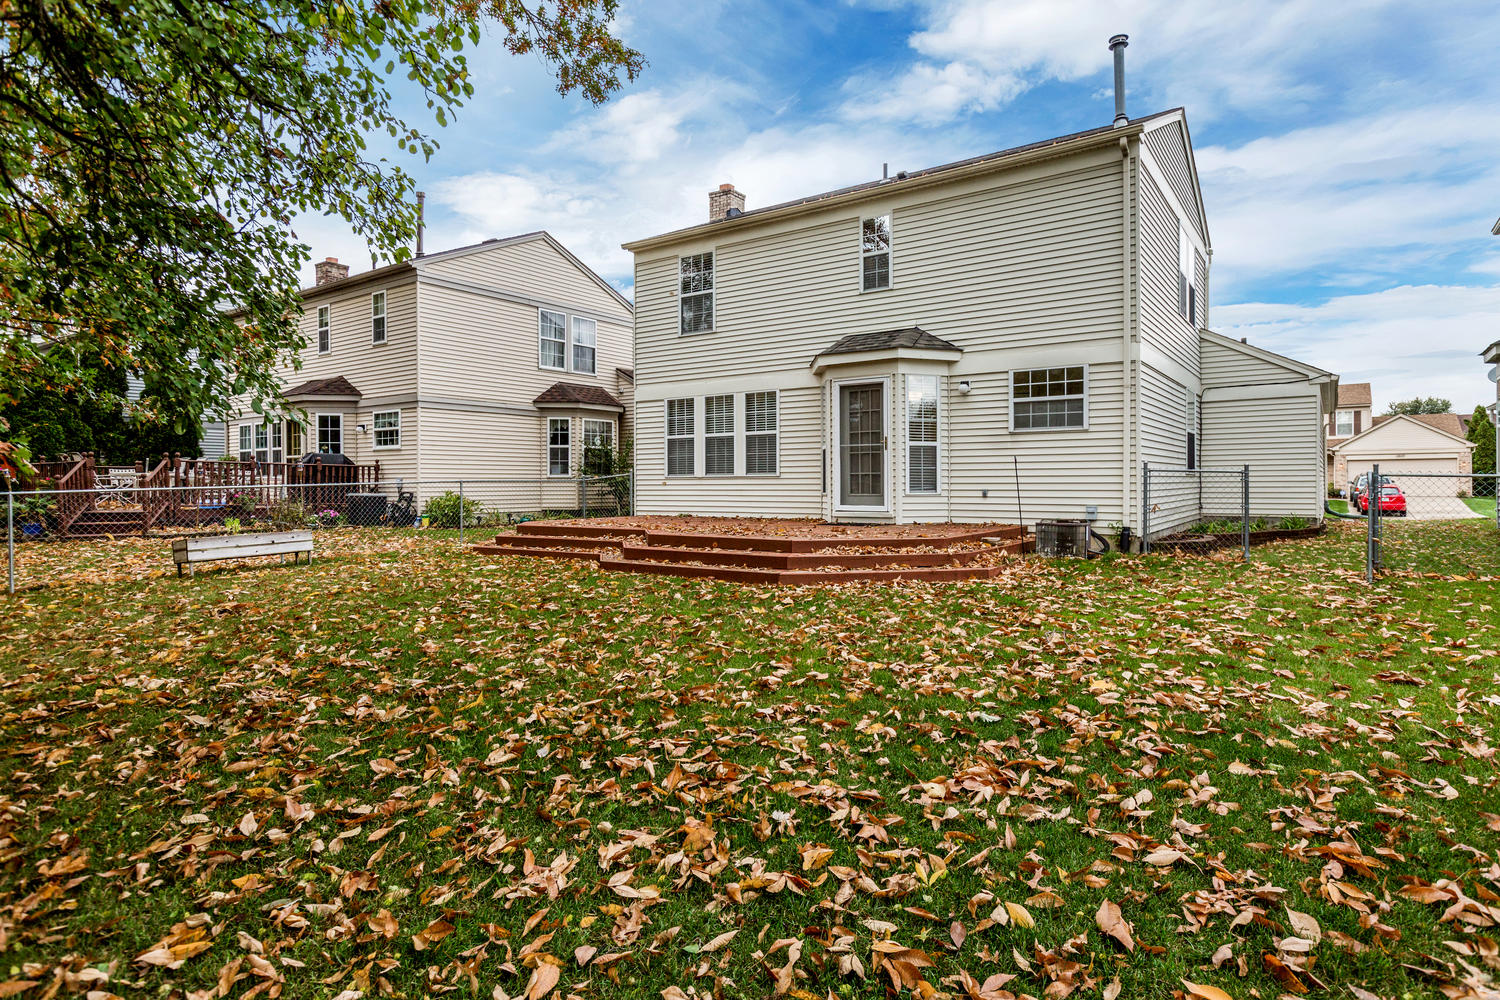 Sold Turnberry Colonial 3620 Ca Canny Ann Arbor Mi